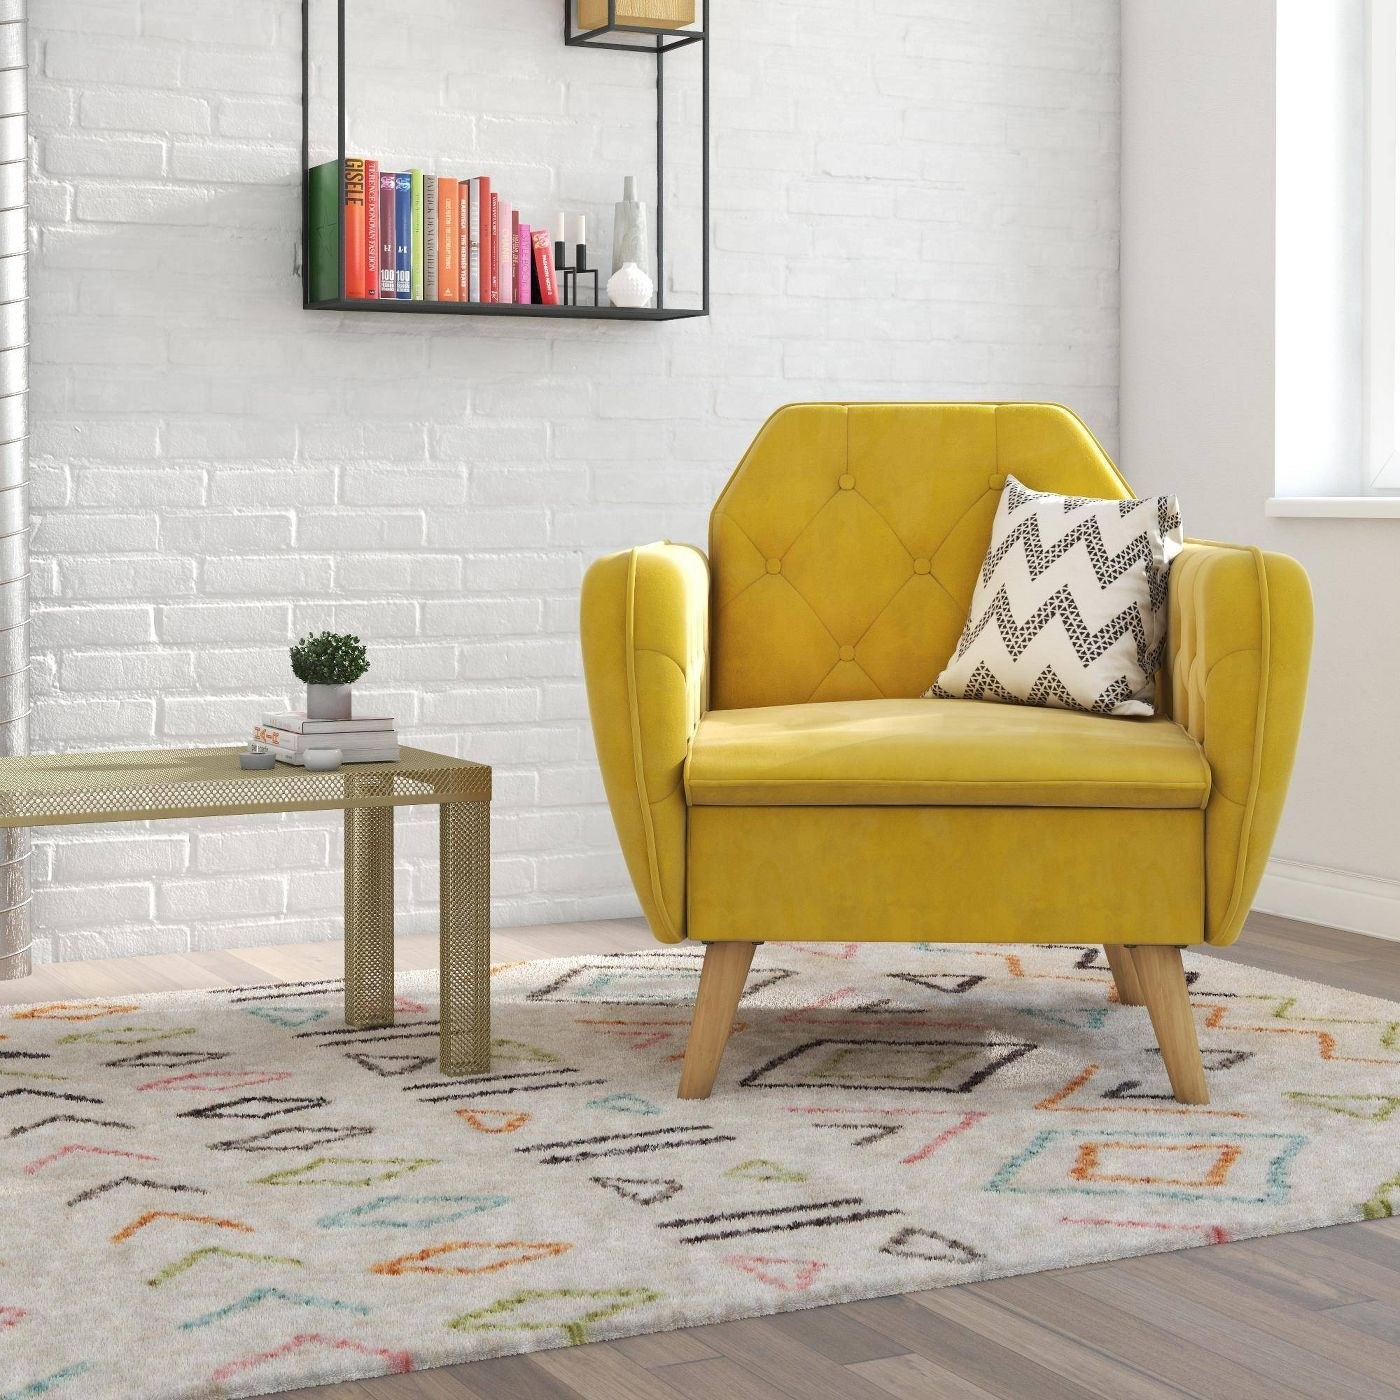 yellow tufted accent chair sitting in the corner of a white room